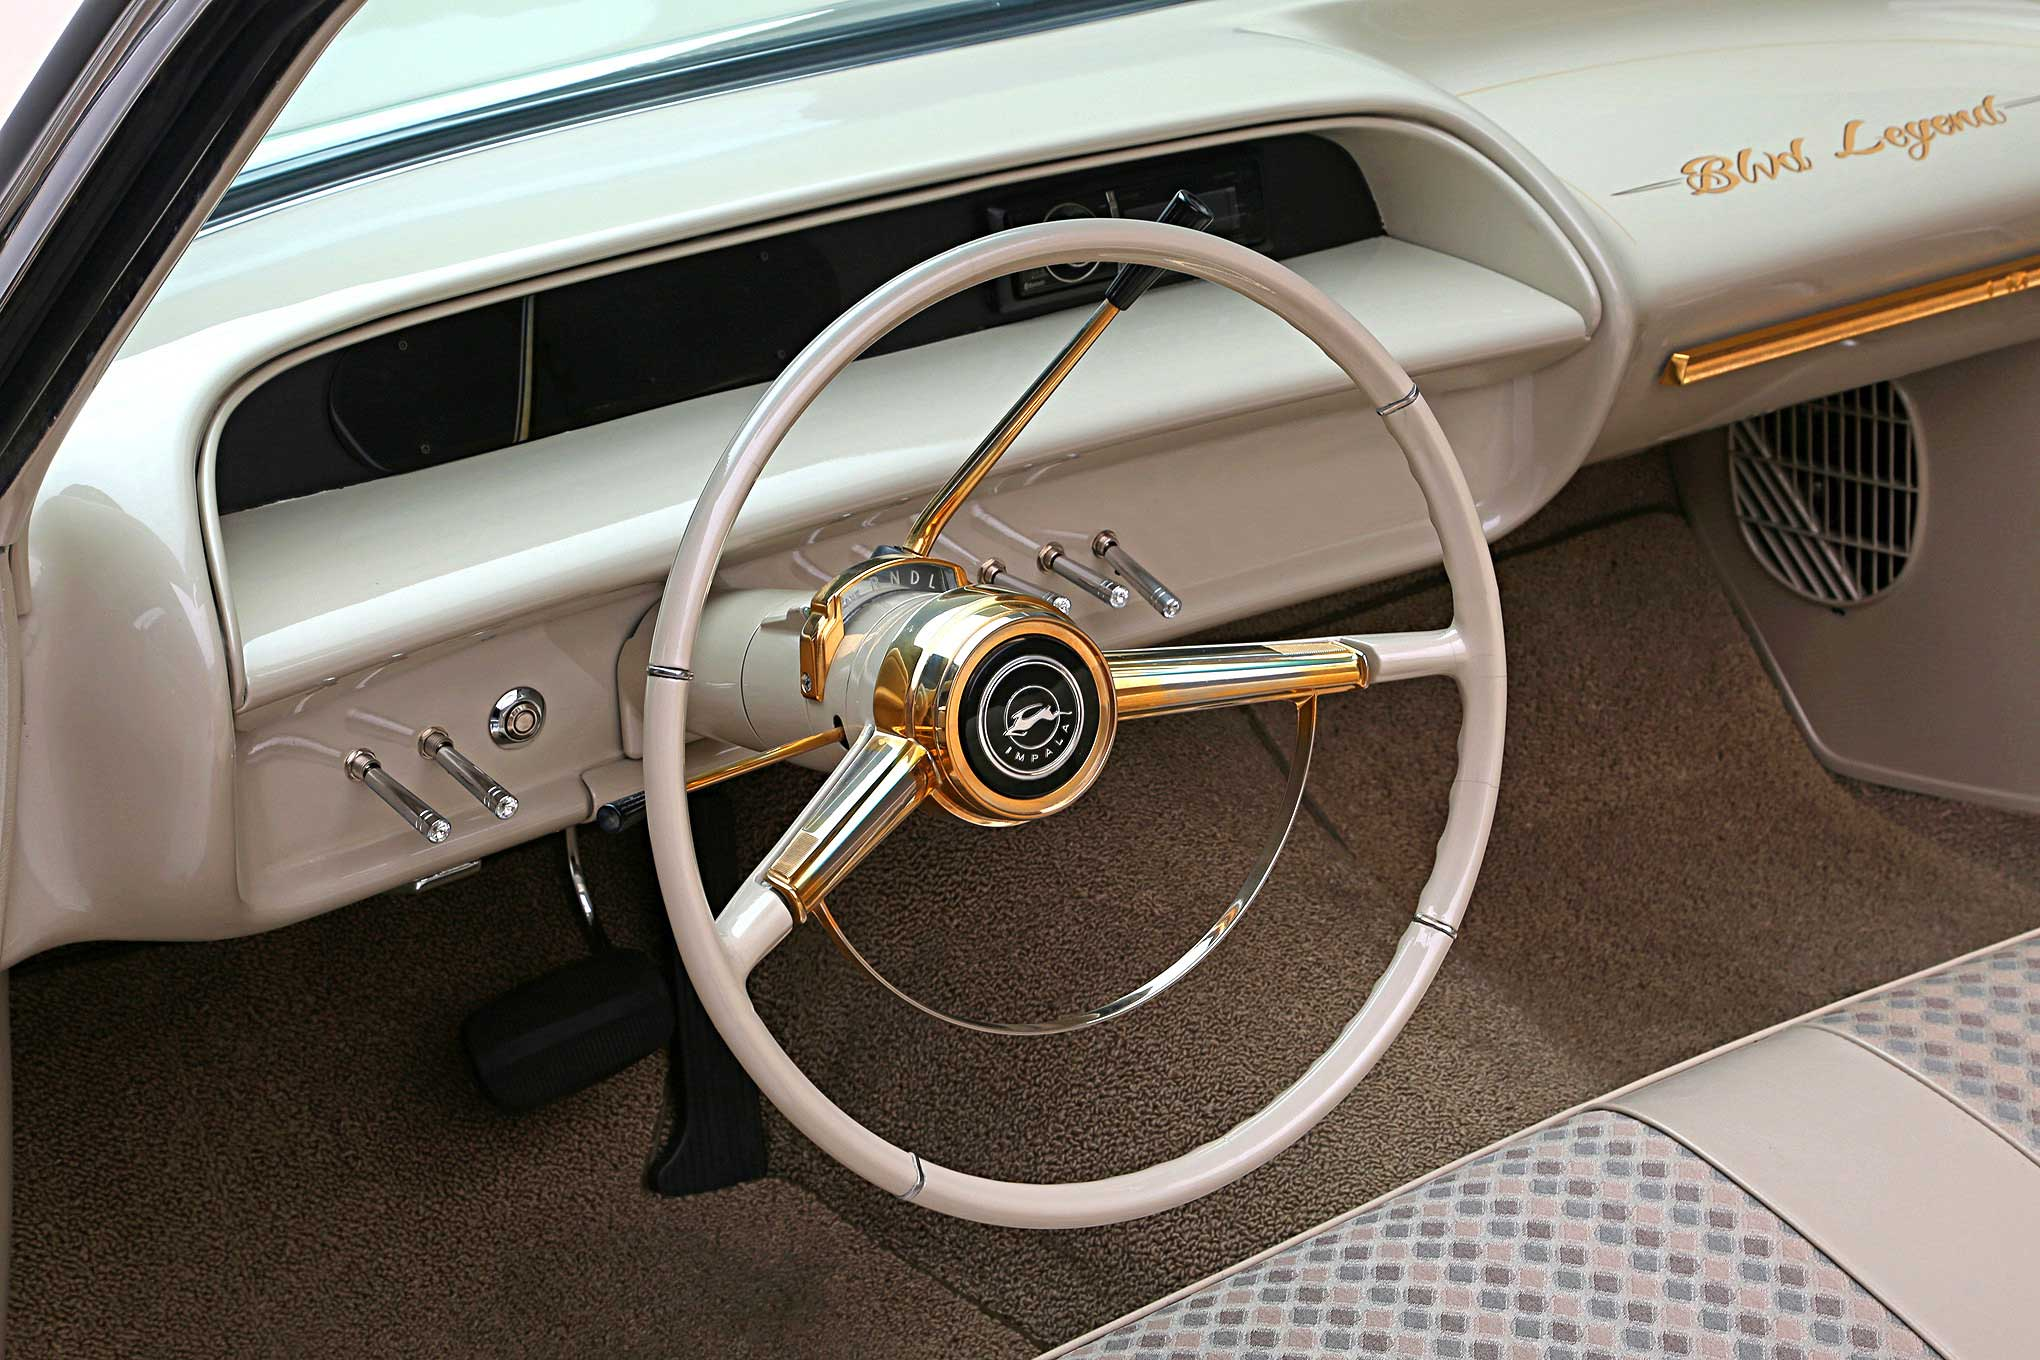 1964 Chevrolet Impala Steering Wheel Lowrider About This Editor